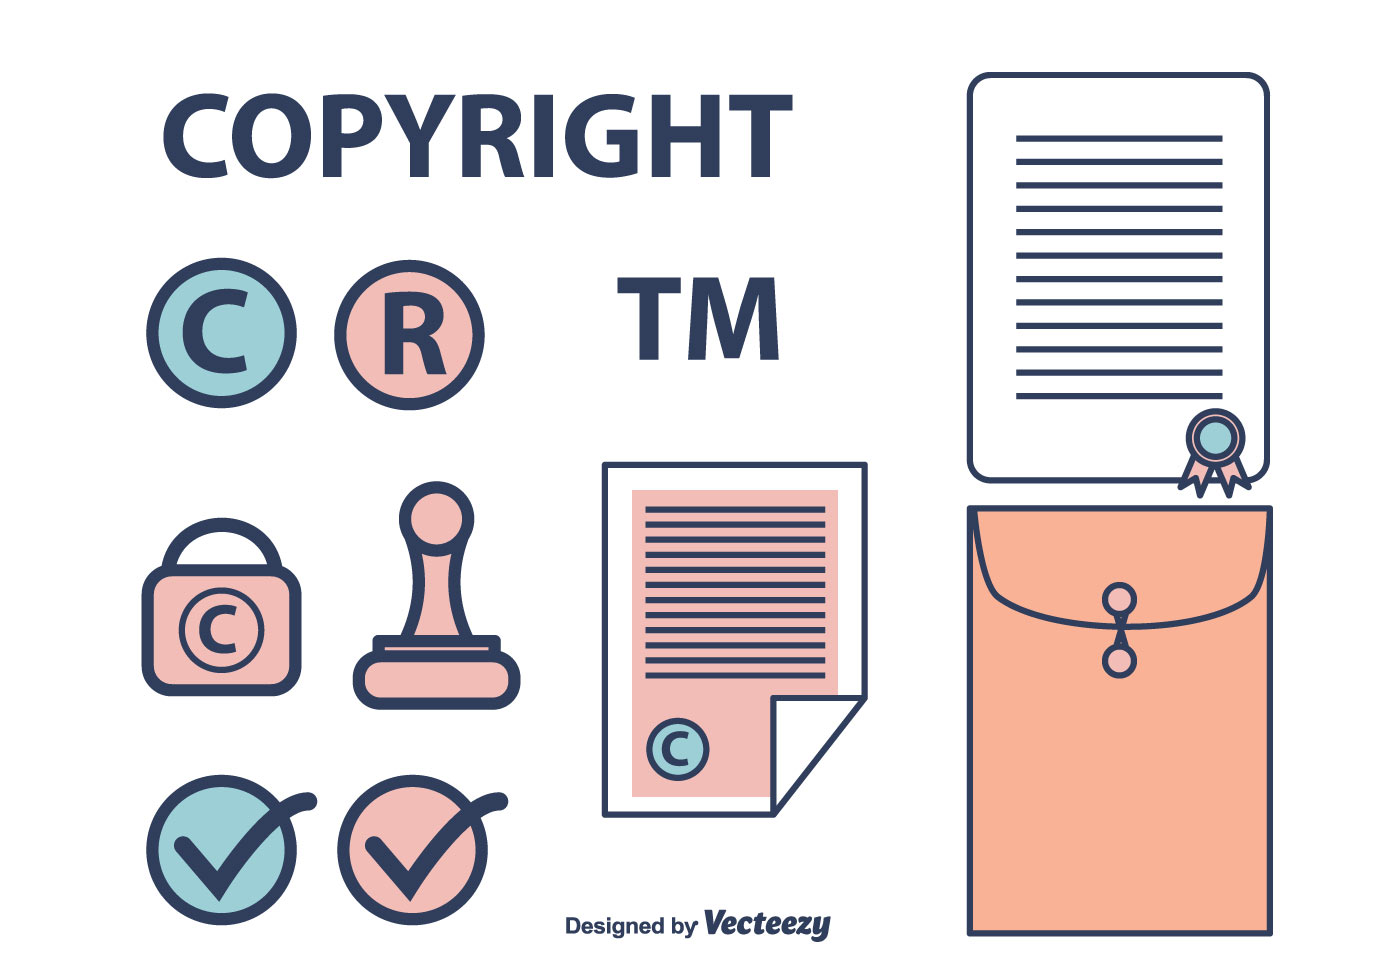 copyright icons set download free vector art stock